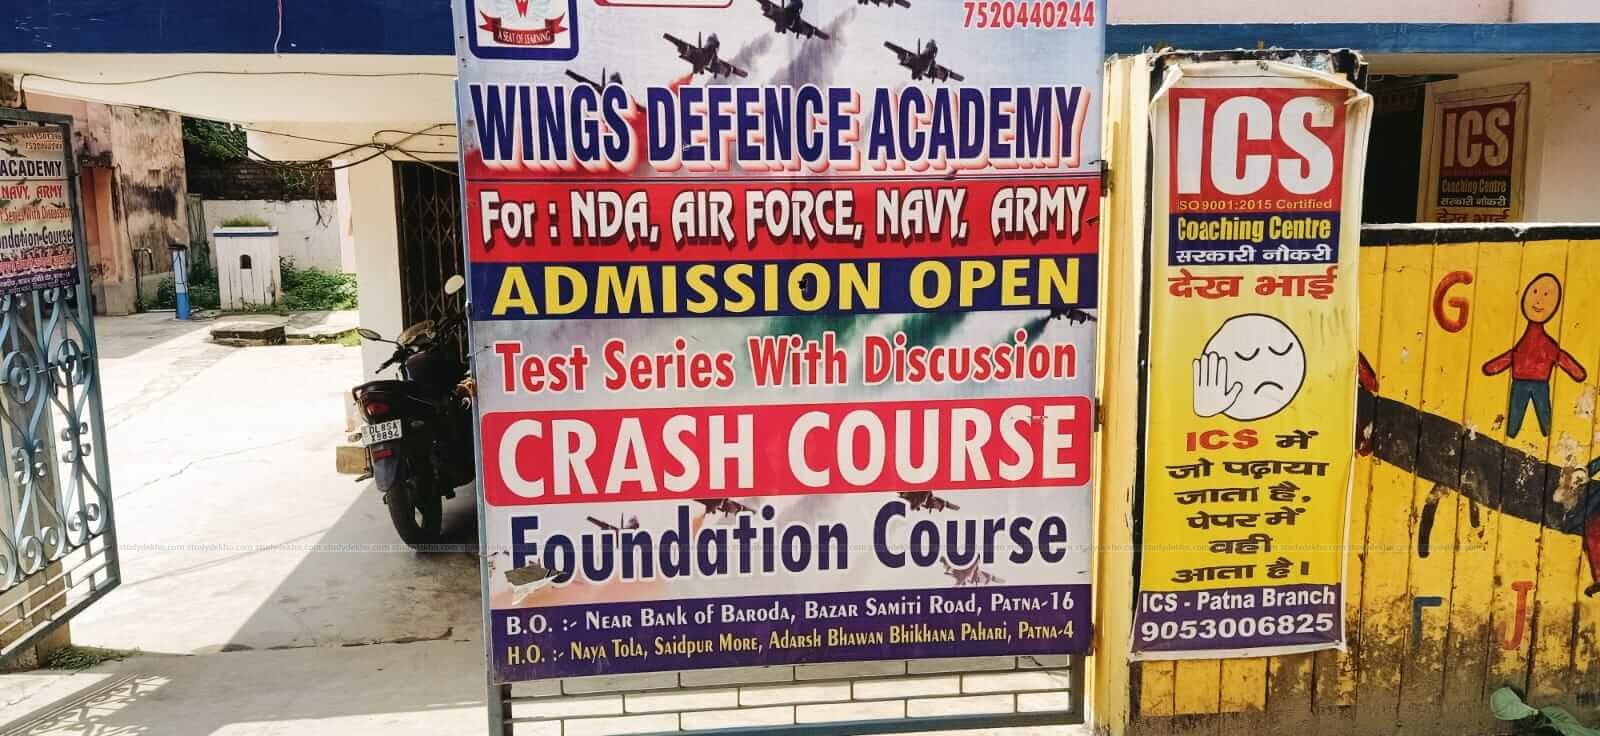 Wings defence academy Logo